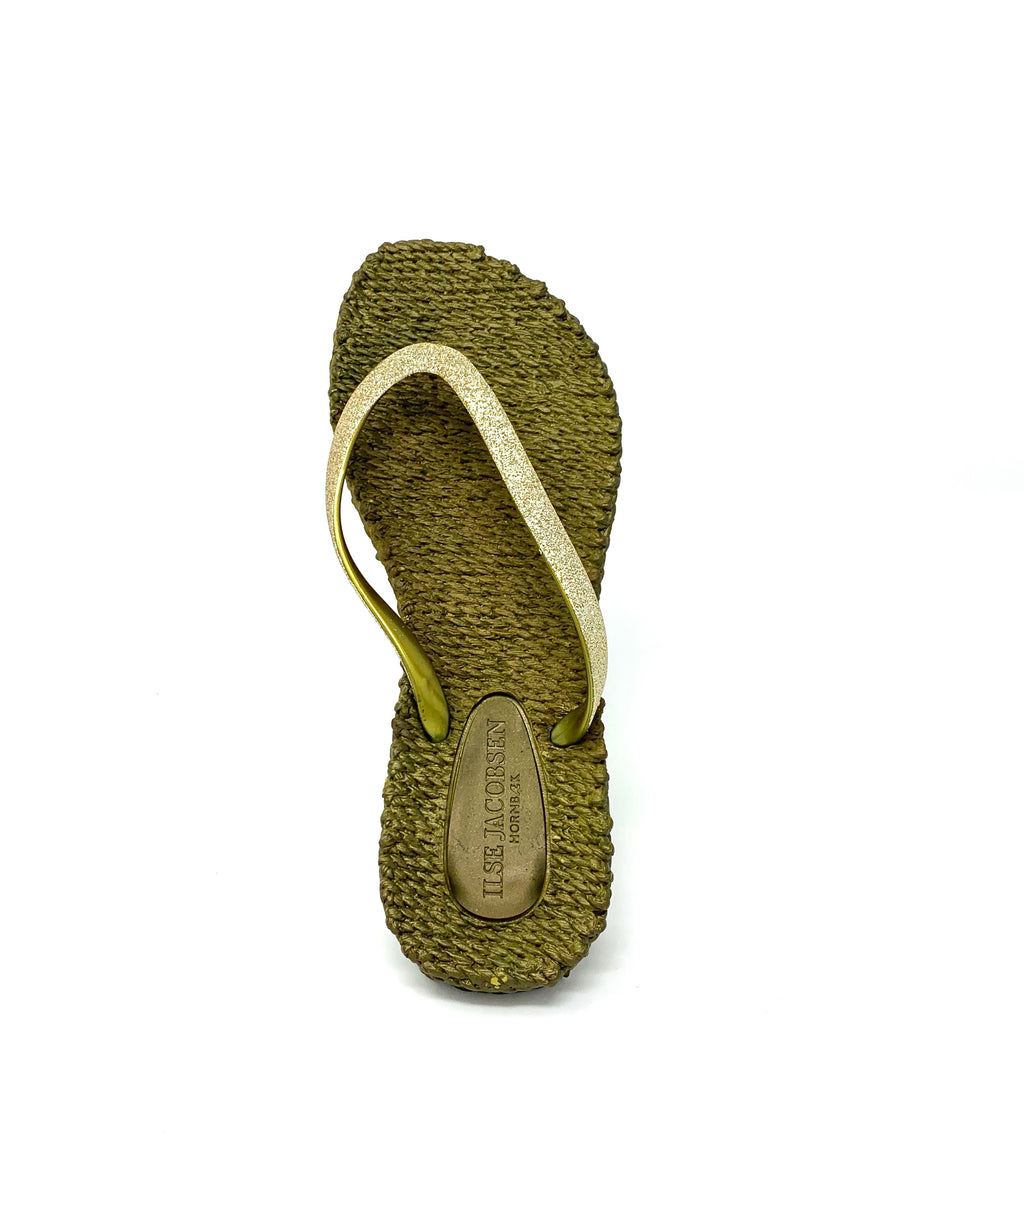 Cheerful Flip Flops - Gold (green tint)